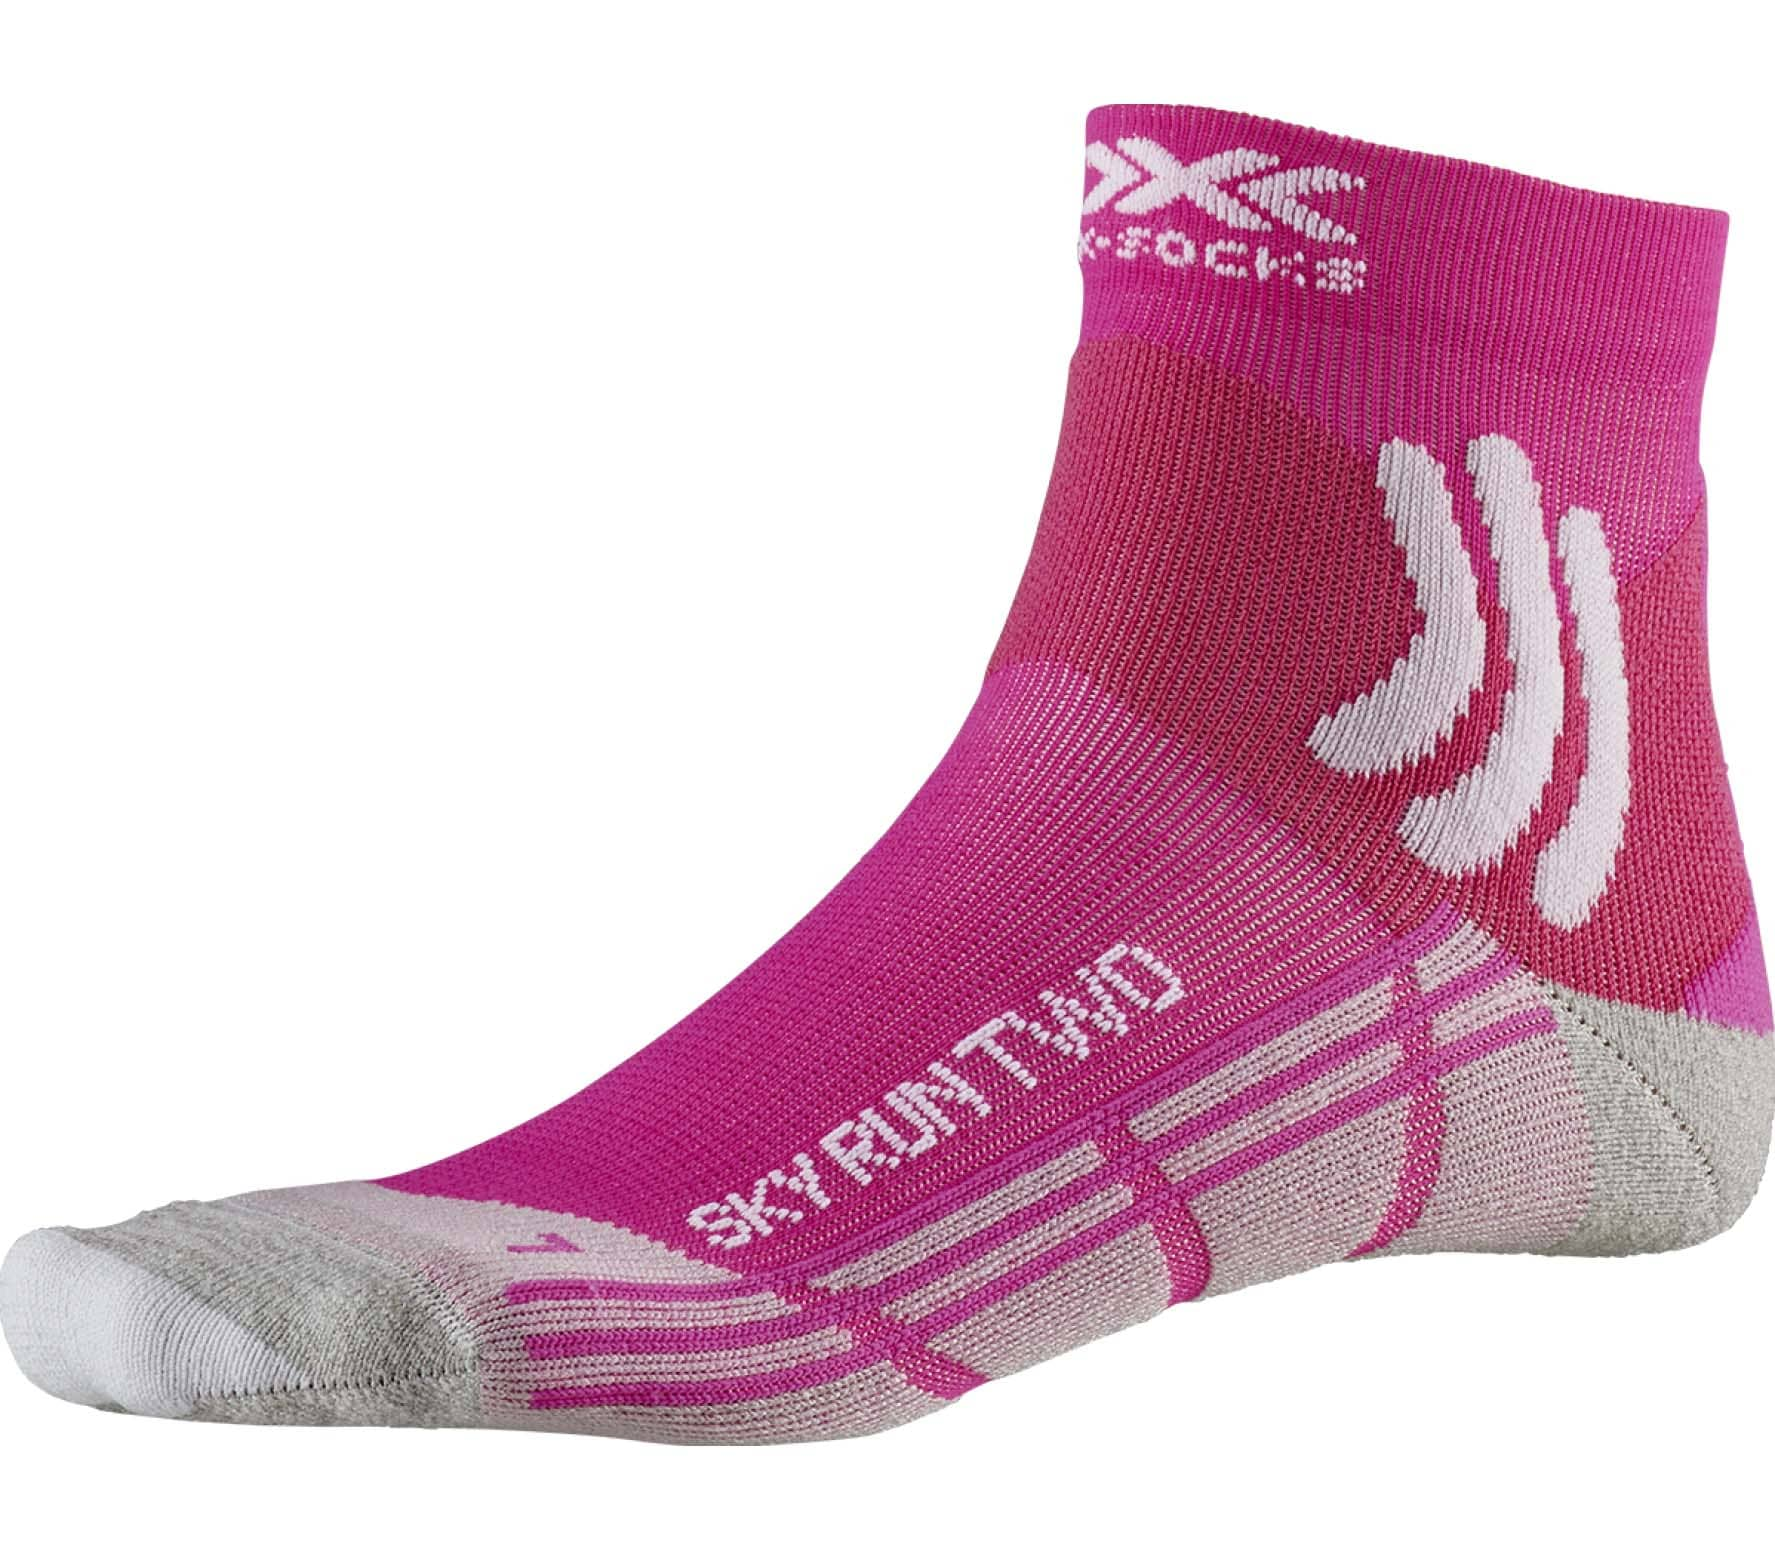 X-Bionic - Sky Two Femmes chaussettes (rose)